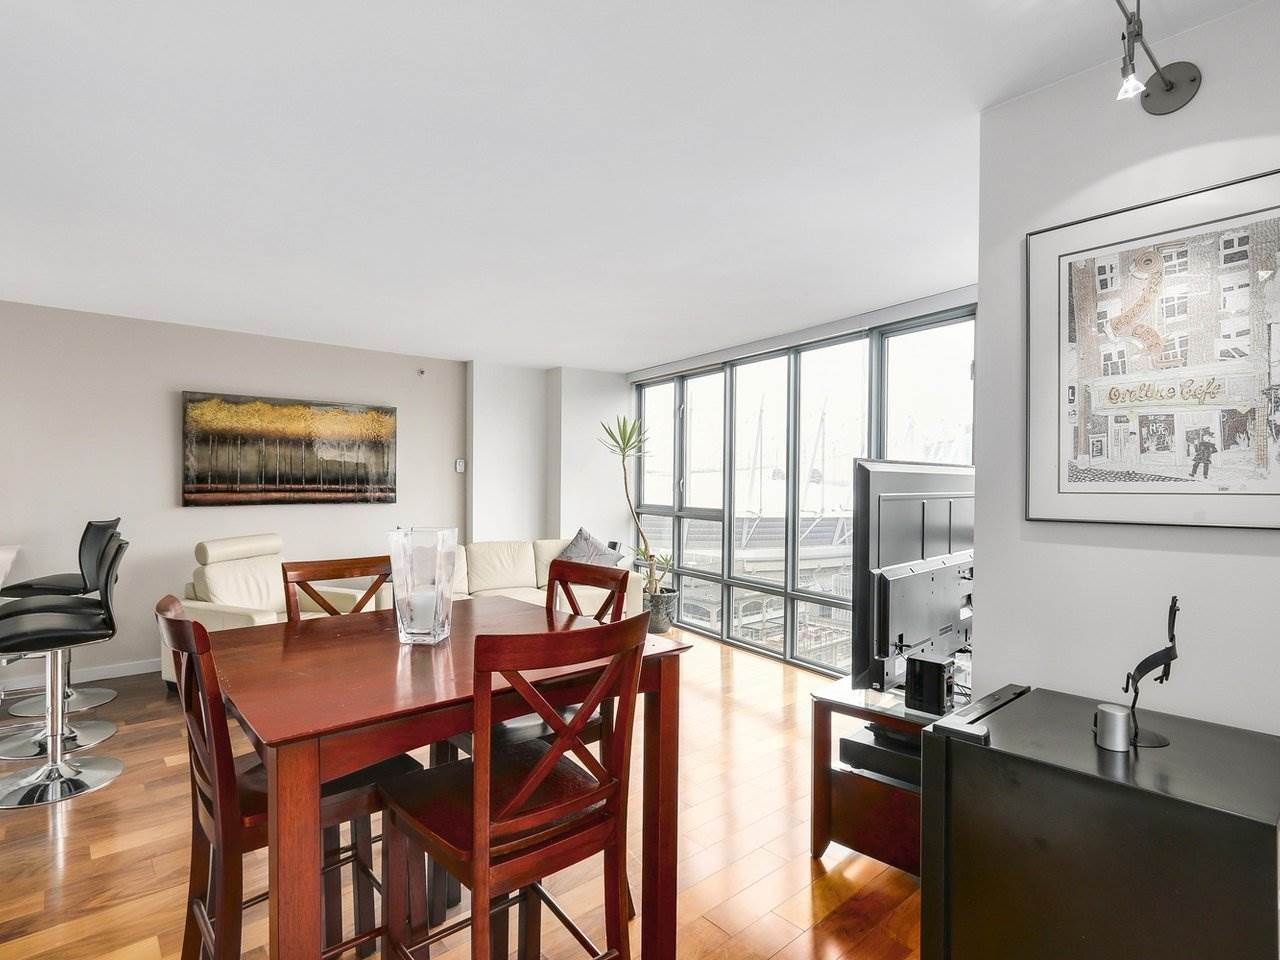 "Photo 7: 2202 930 CAMBIE Street in Vancouver: Yaletown Condo for sale in ""PACIFIC PLACE LANDMARK 2"" (Vancouver West)  : MLS(r) # R2161898"